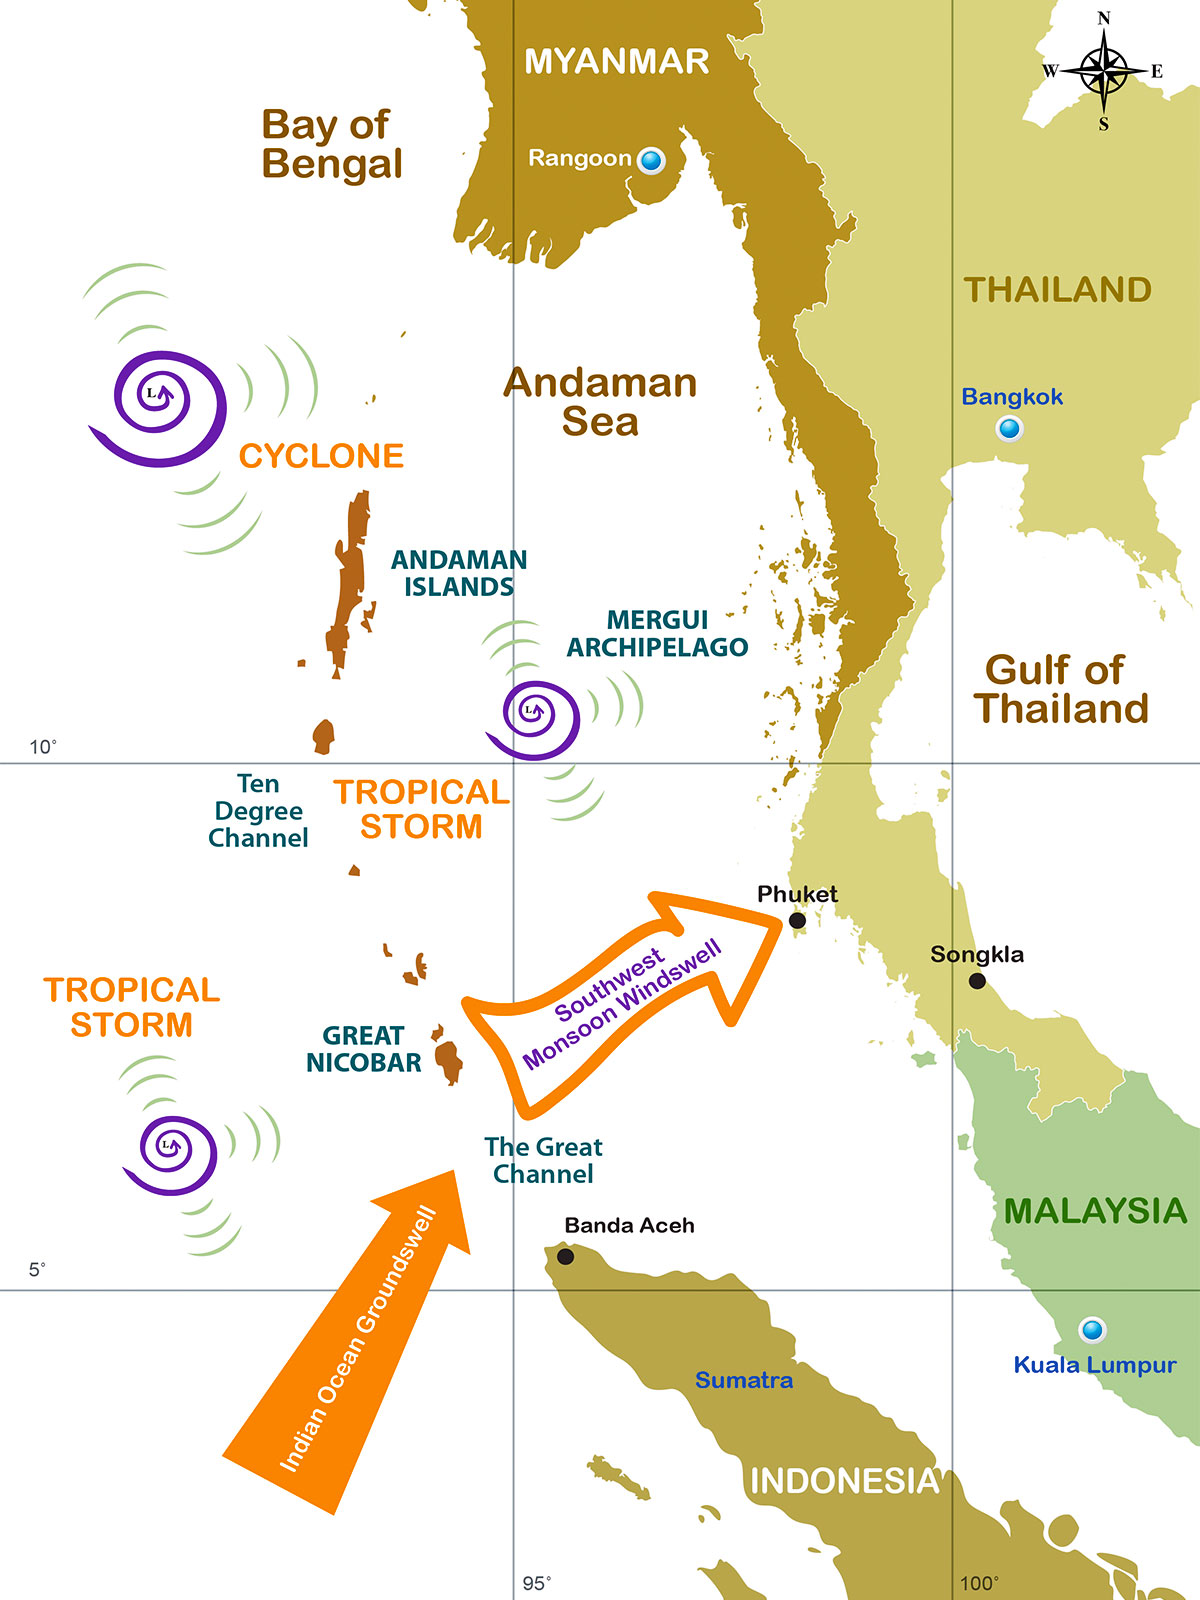 Andaman Surf Meteorology | Surf Science of the Andaman Sea | Steven A. Martin, Ph.D. | Surfing Thailand